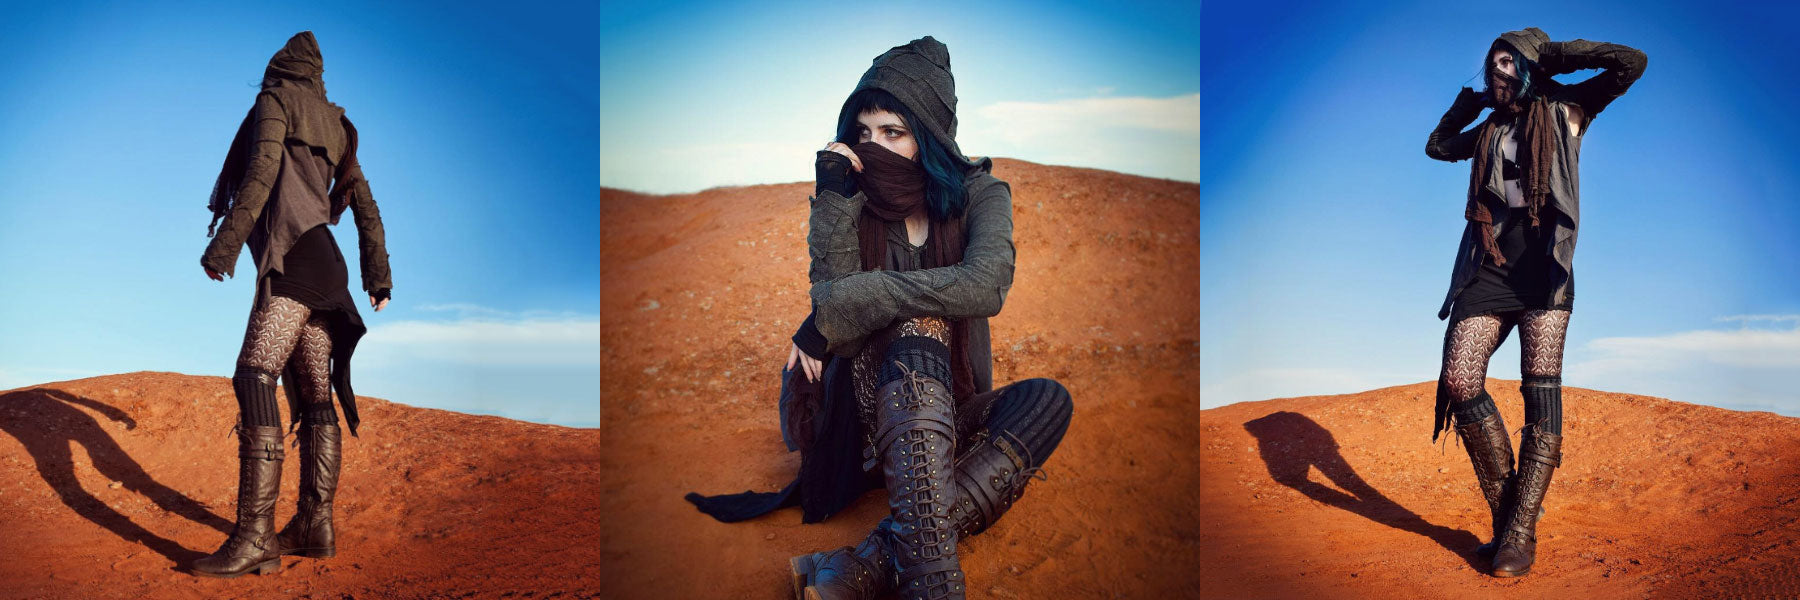 @catinawitchhat for Psylo Fashion the 'Scavenger' post-apocalyptic look